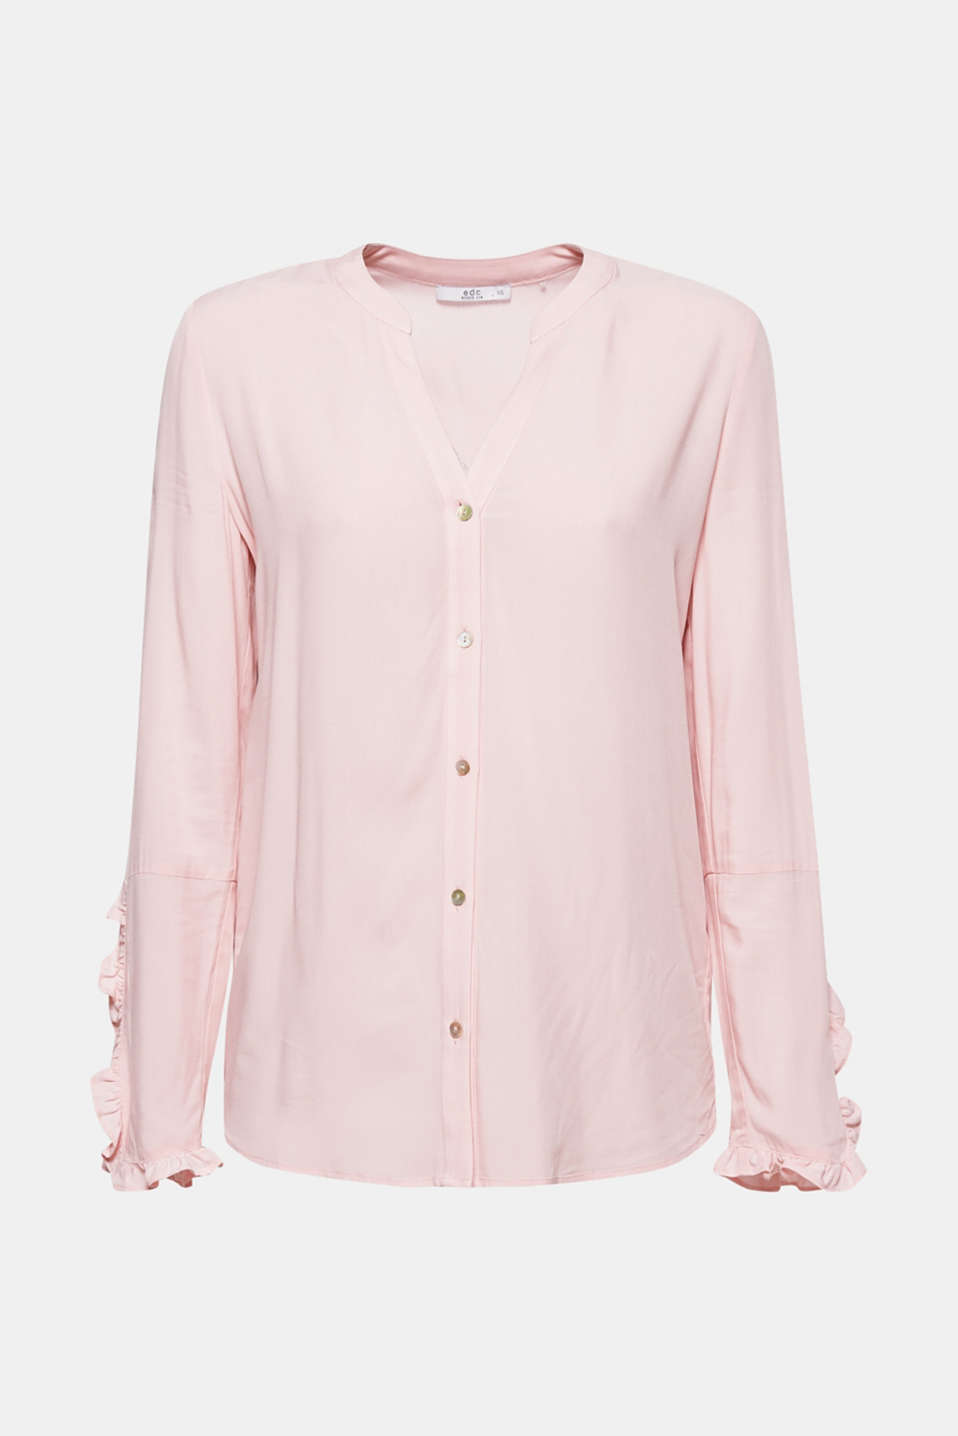 So pure and so feminine, this figure-skimming blouse features pretty frilled accents and a Henley neckline.